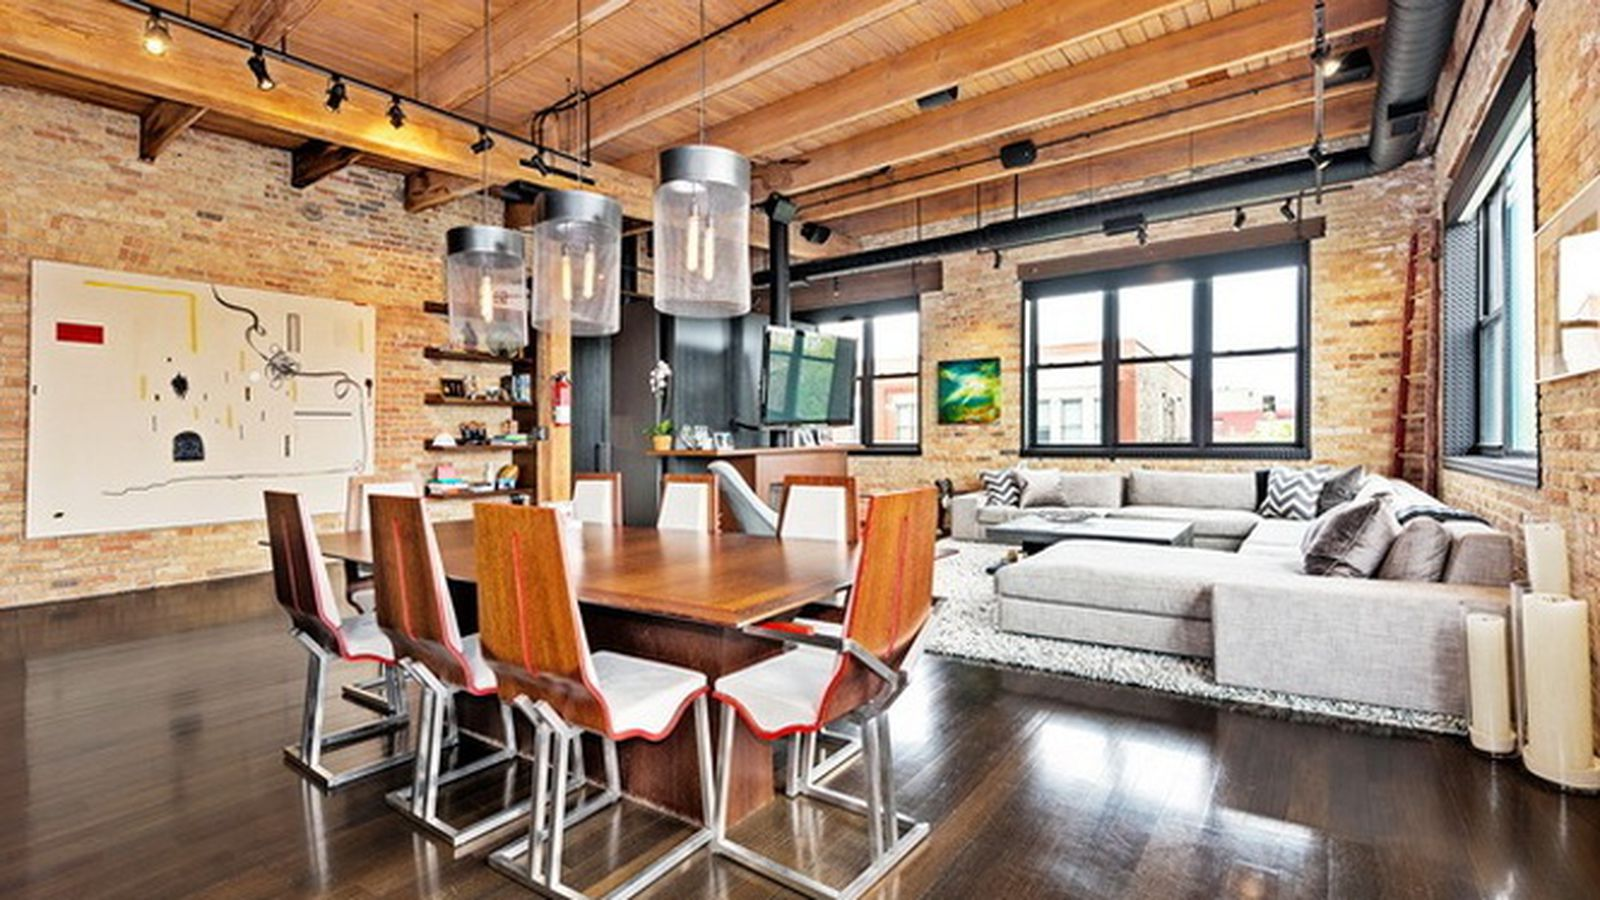 Three of the loftiest chicago timber lofts for sale for House for sale at chicago